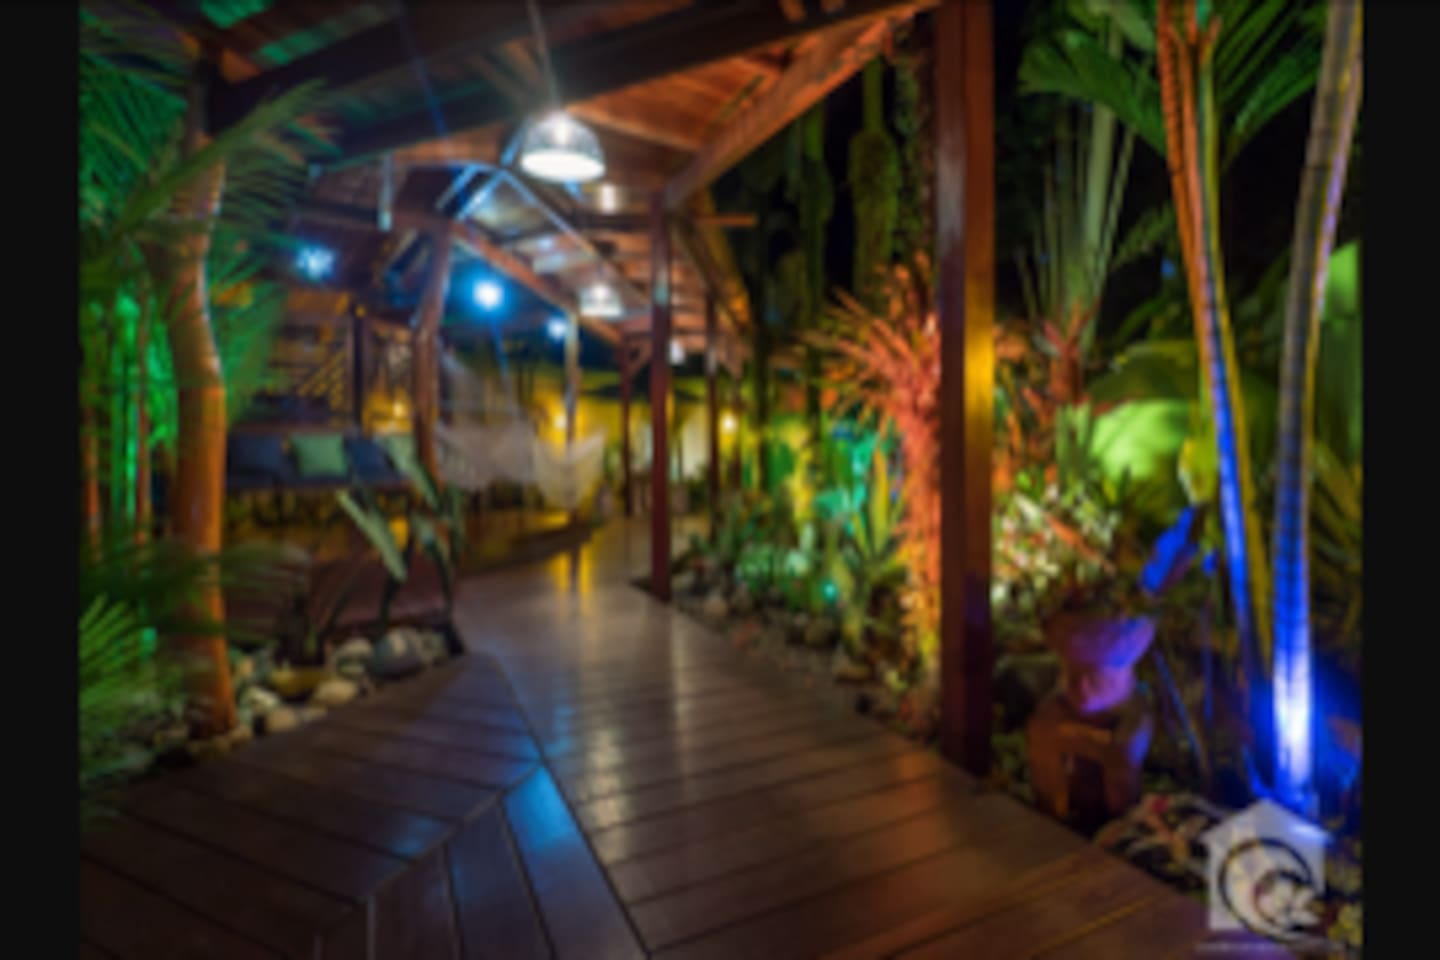 Our beautiful garden relaxation area at night